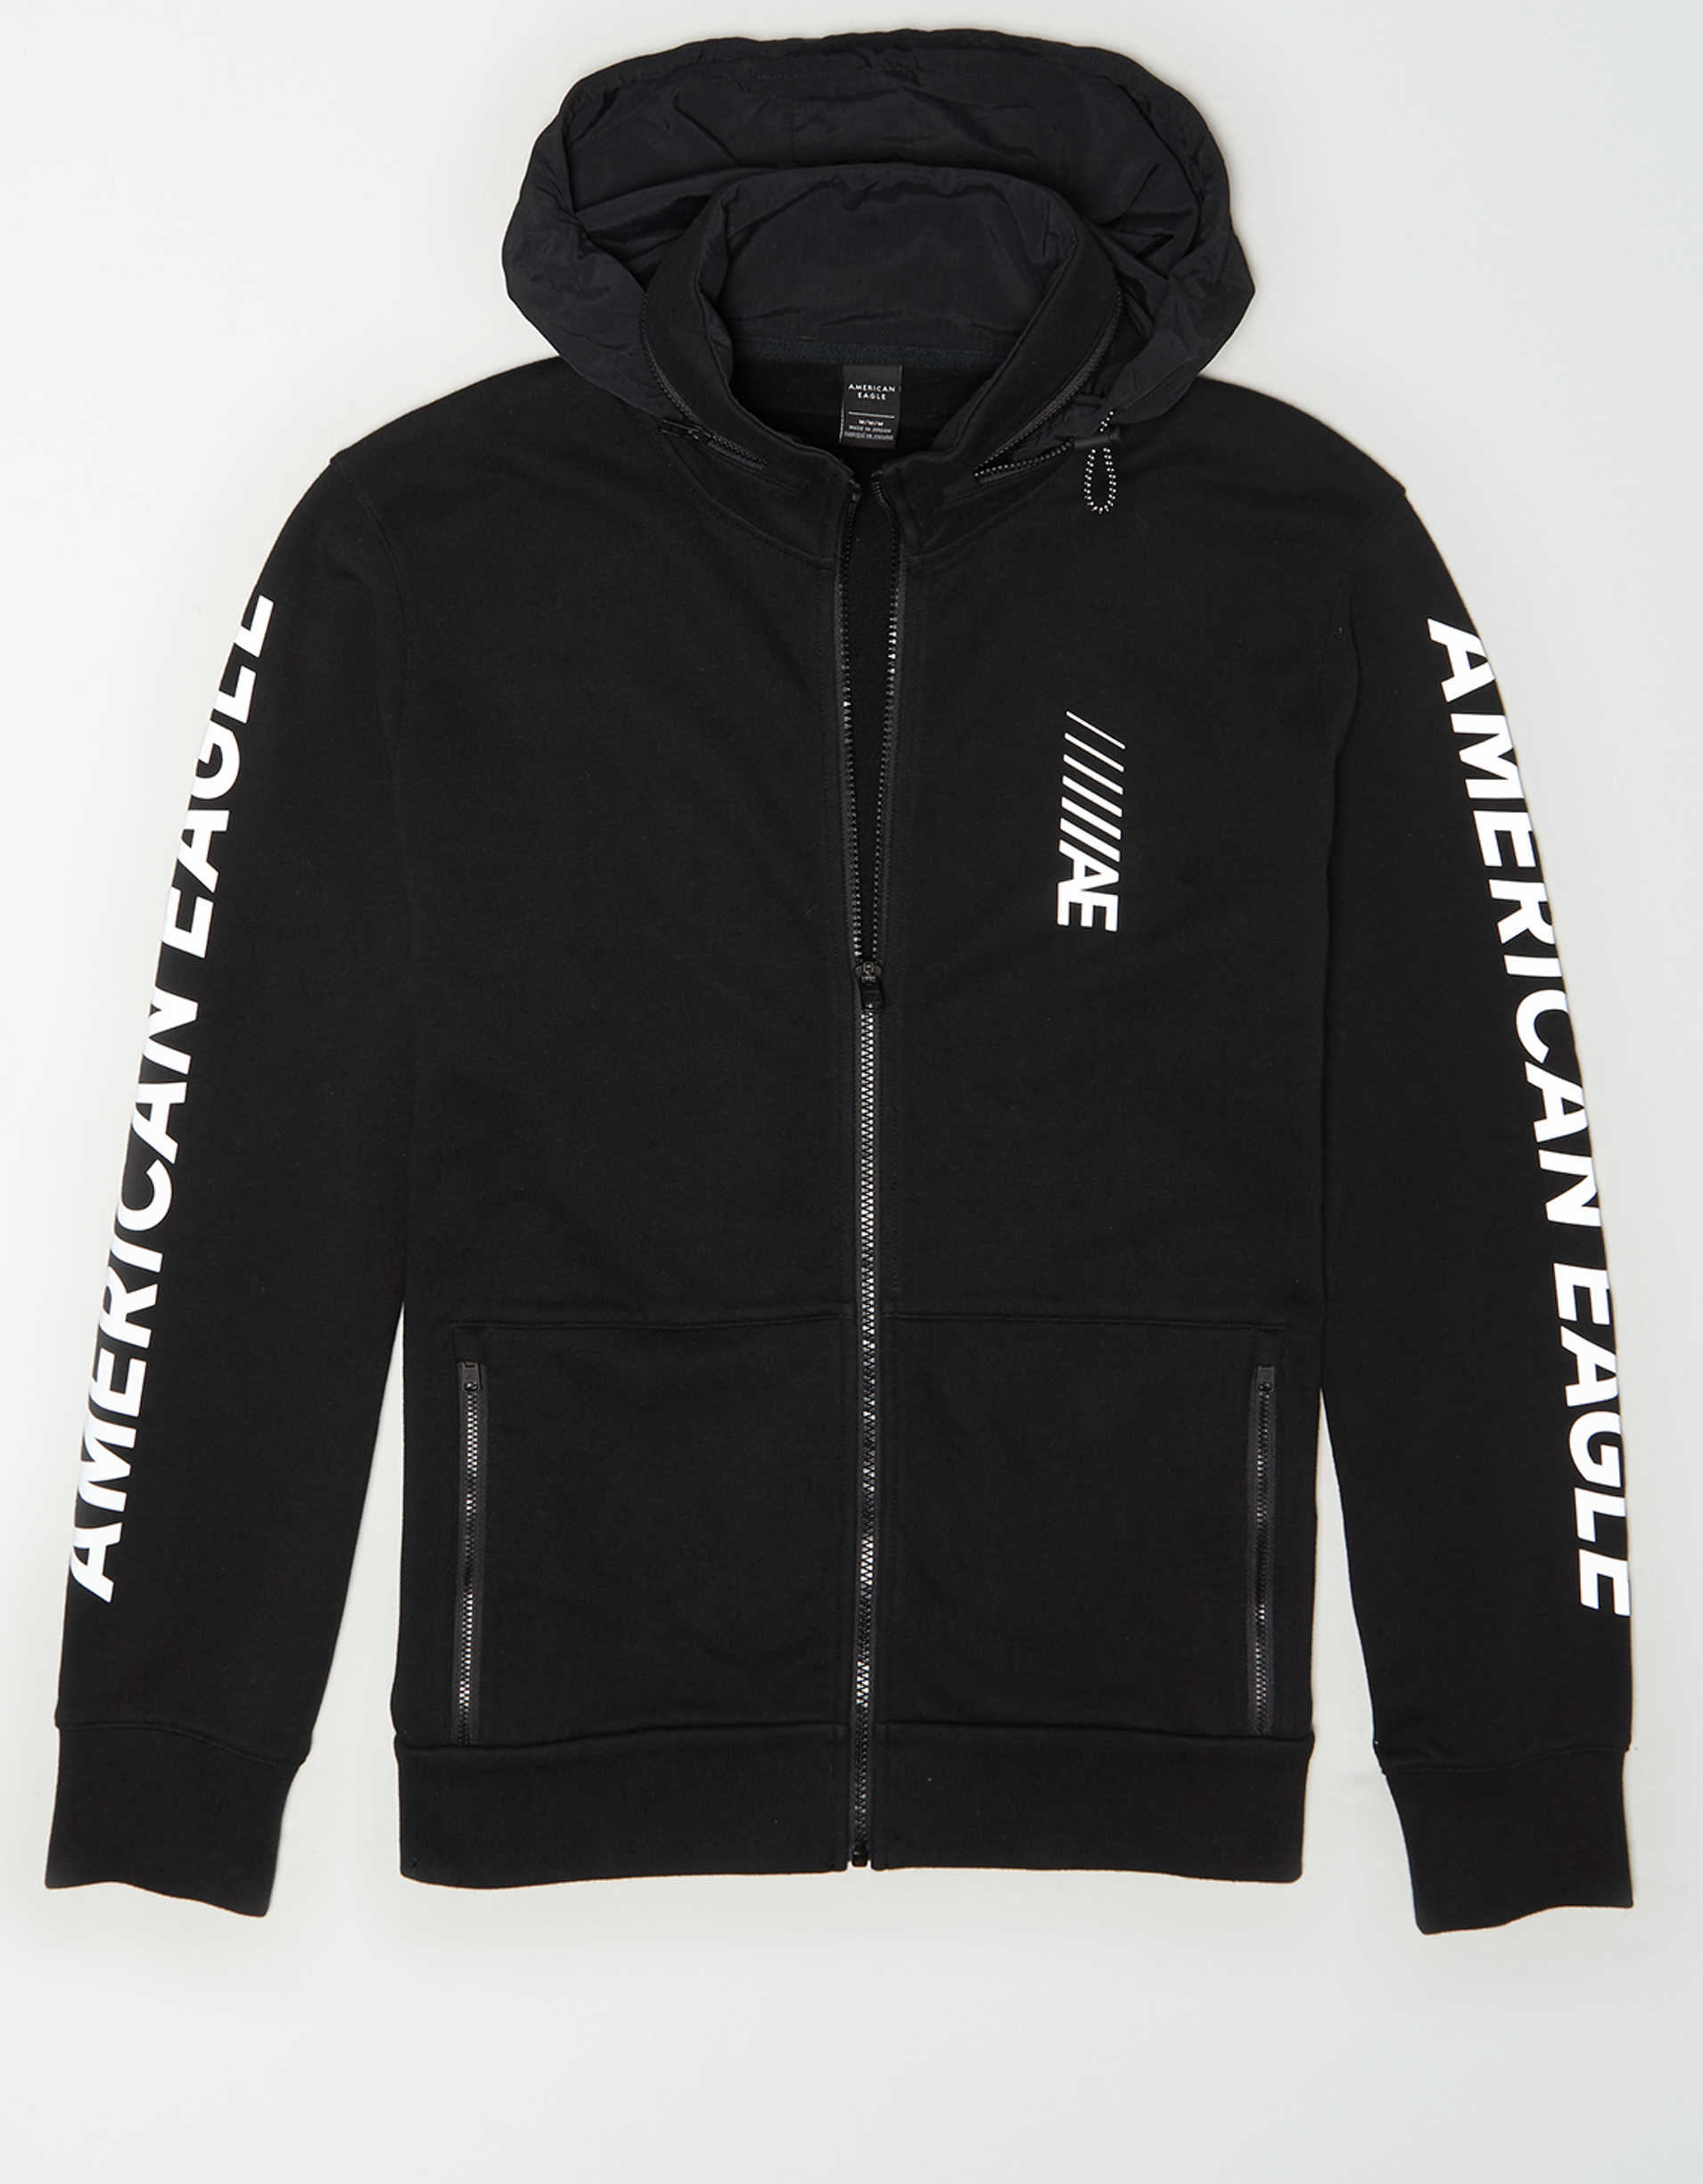 AE Ne(x)t Level Graphic Zip-Up Hoodie